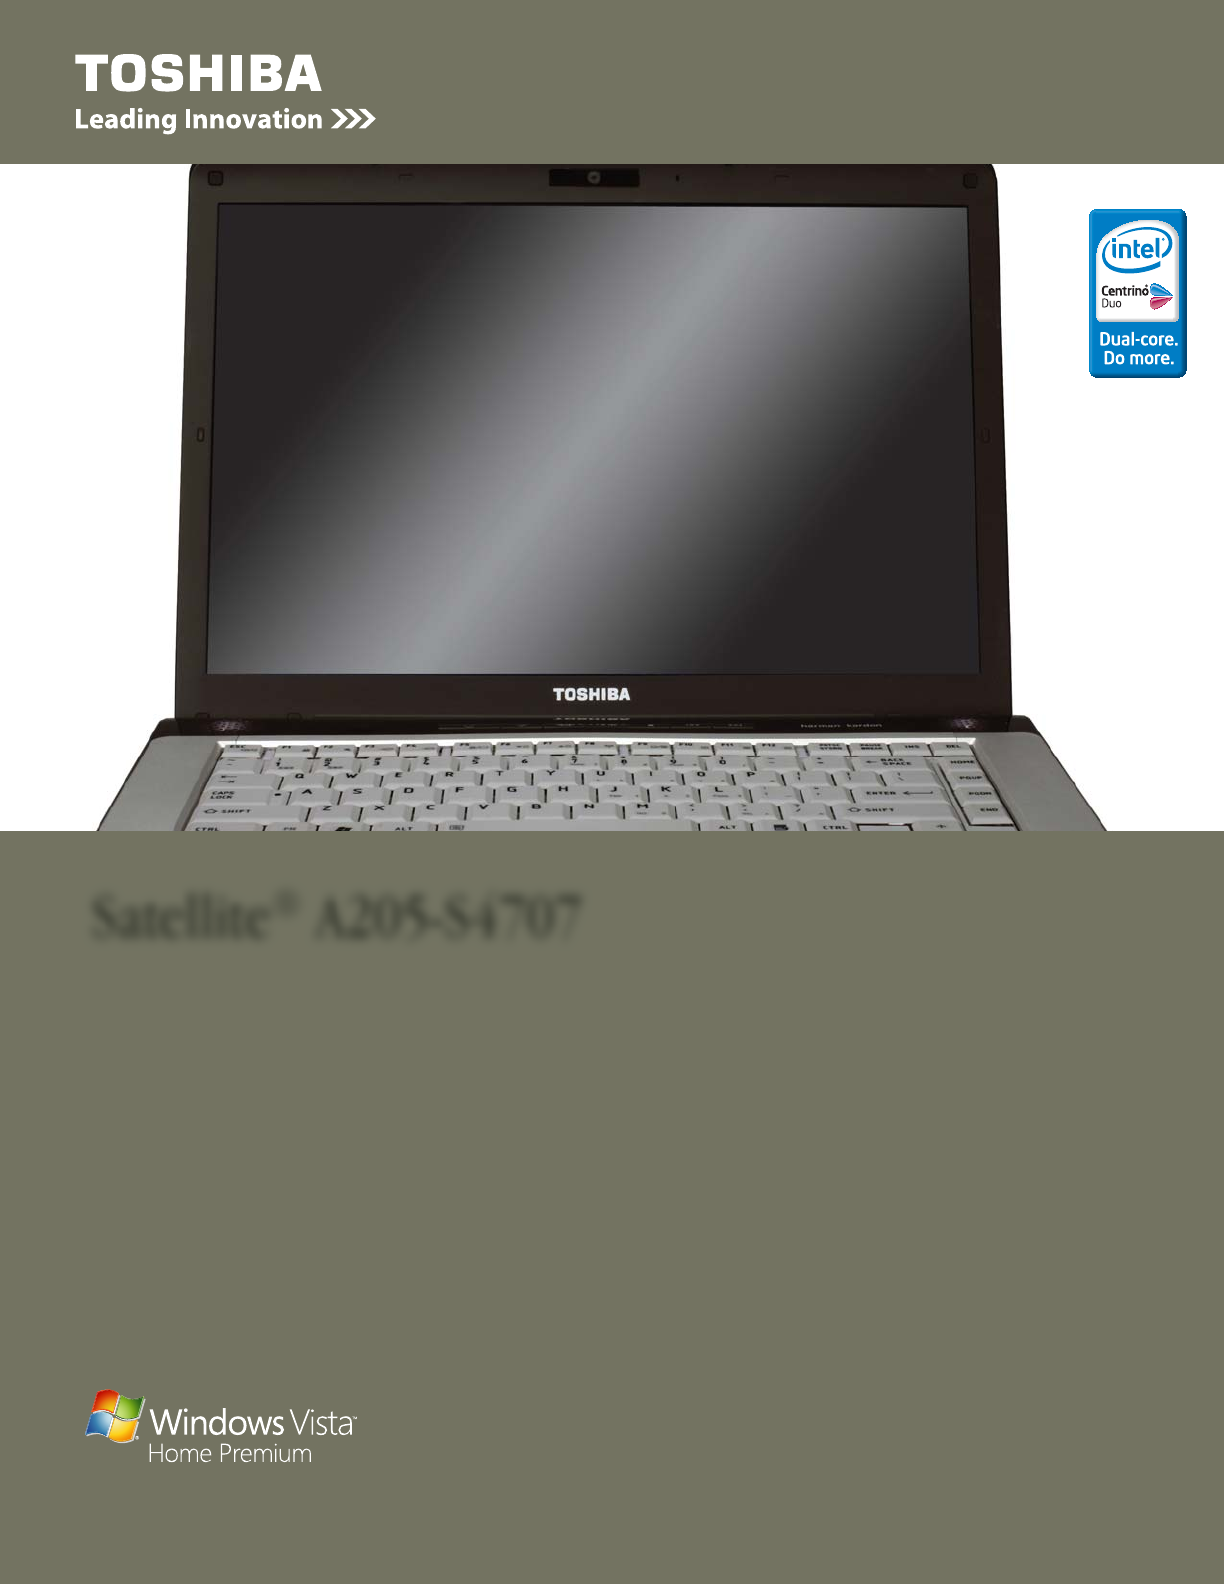 toshiba laptop a205 s4707 user guide manualsonline com rh office manualsonline com Toshiba Laptops toshiba satellite a205 manual